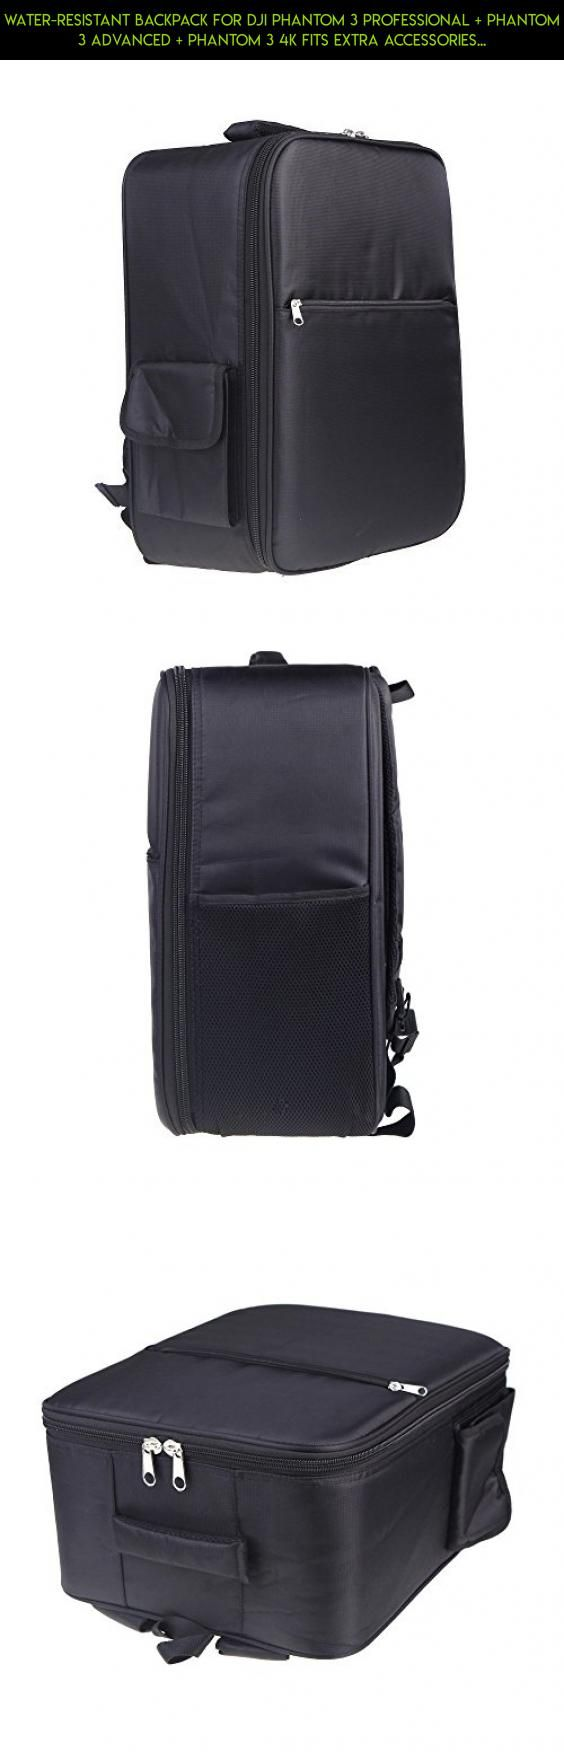 Water-Resistant Backpack for DJI Phantom 3 Professional + Phantom 3 Advanced + Phantom 3 4K Fits Extra Accessories and Laptop #shopping #products #kit #fpv #3 #plans #backpack #camera #parts #racing #dji #drone #gadgets #advanced #tech #phantom #technology